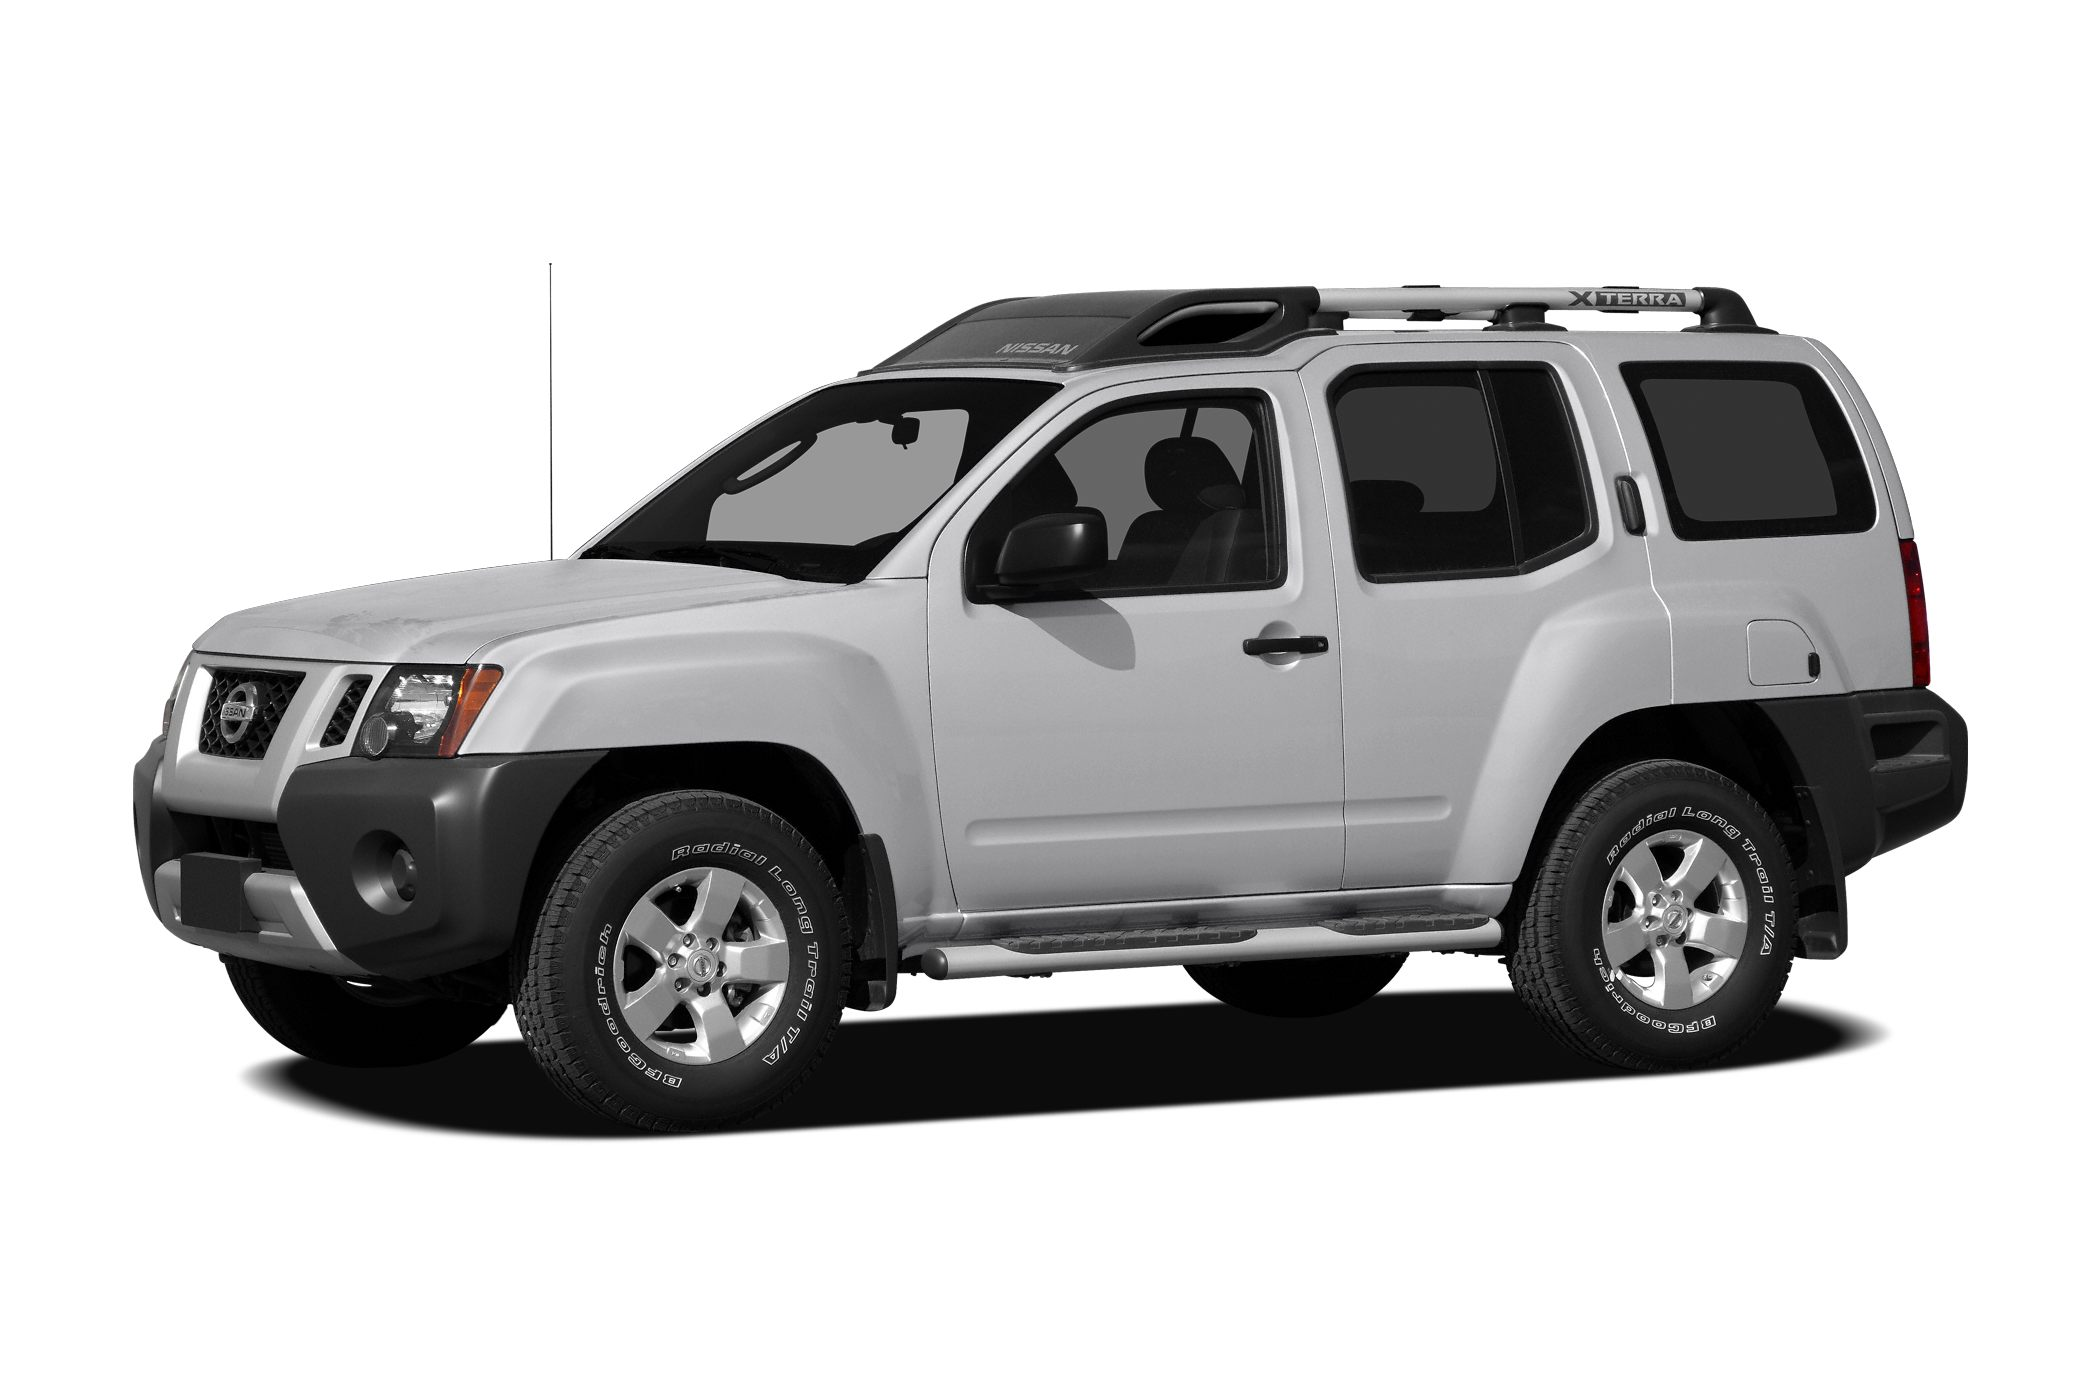 2009 Nissan Xterra S SUV for sale in Collins for $12,965 with 137,518 miles.